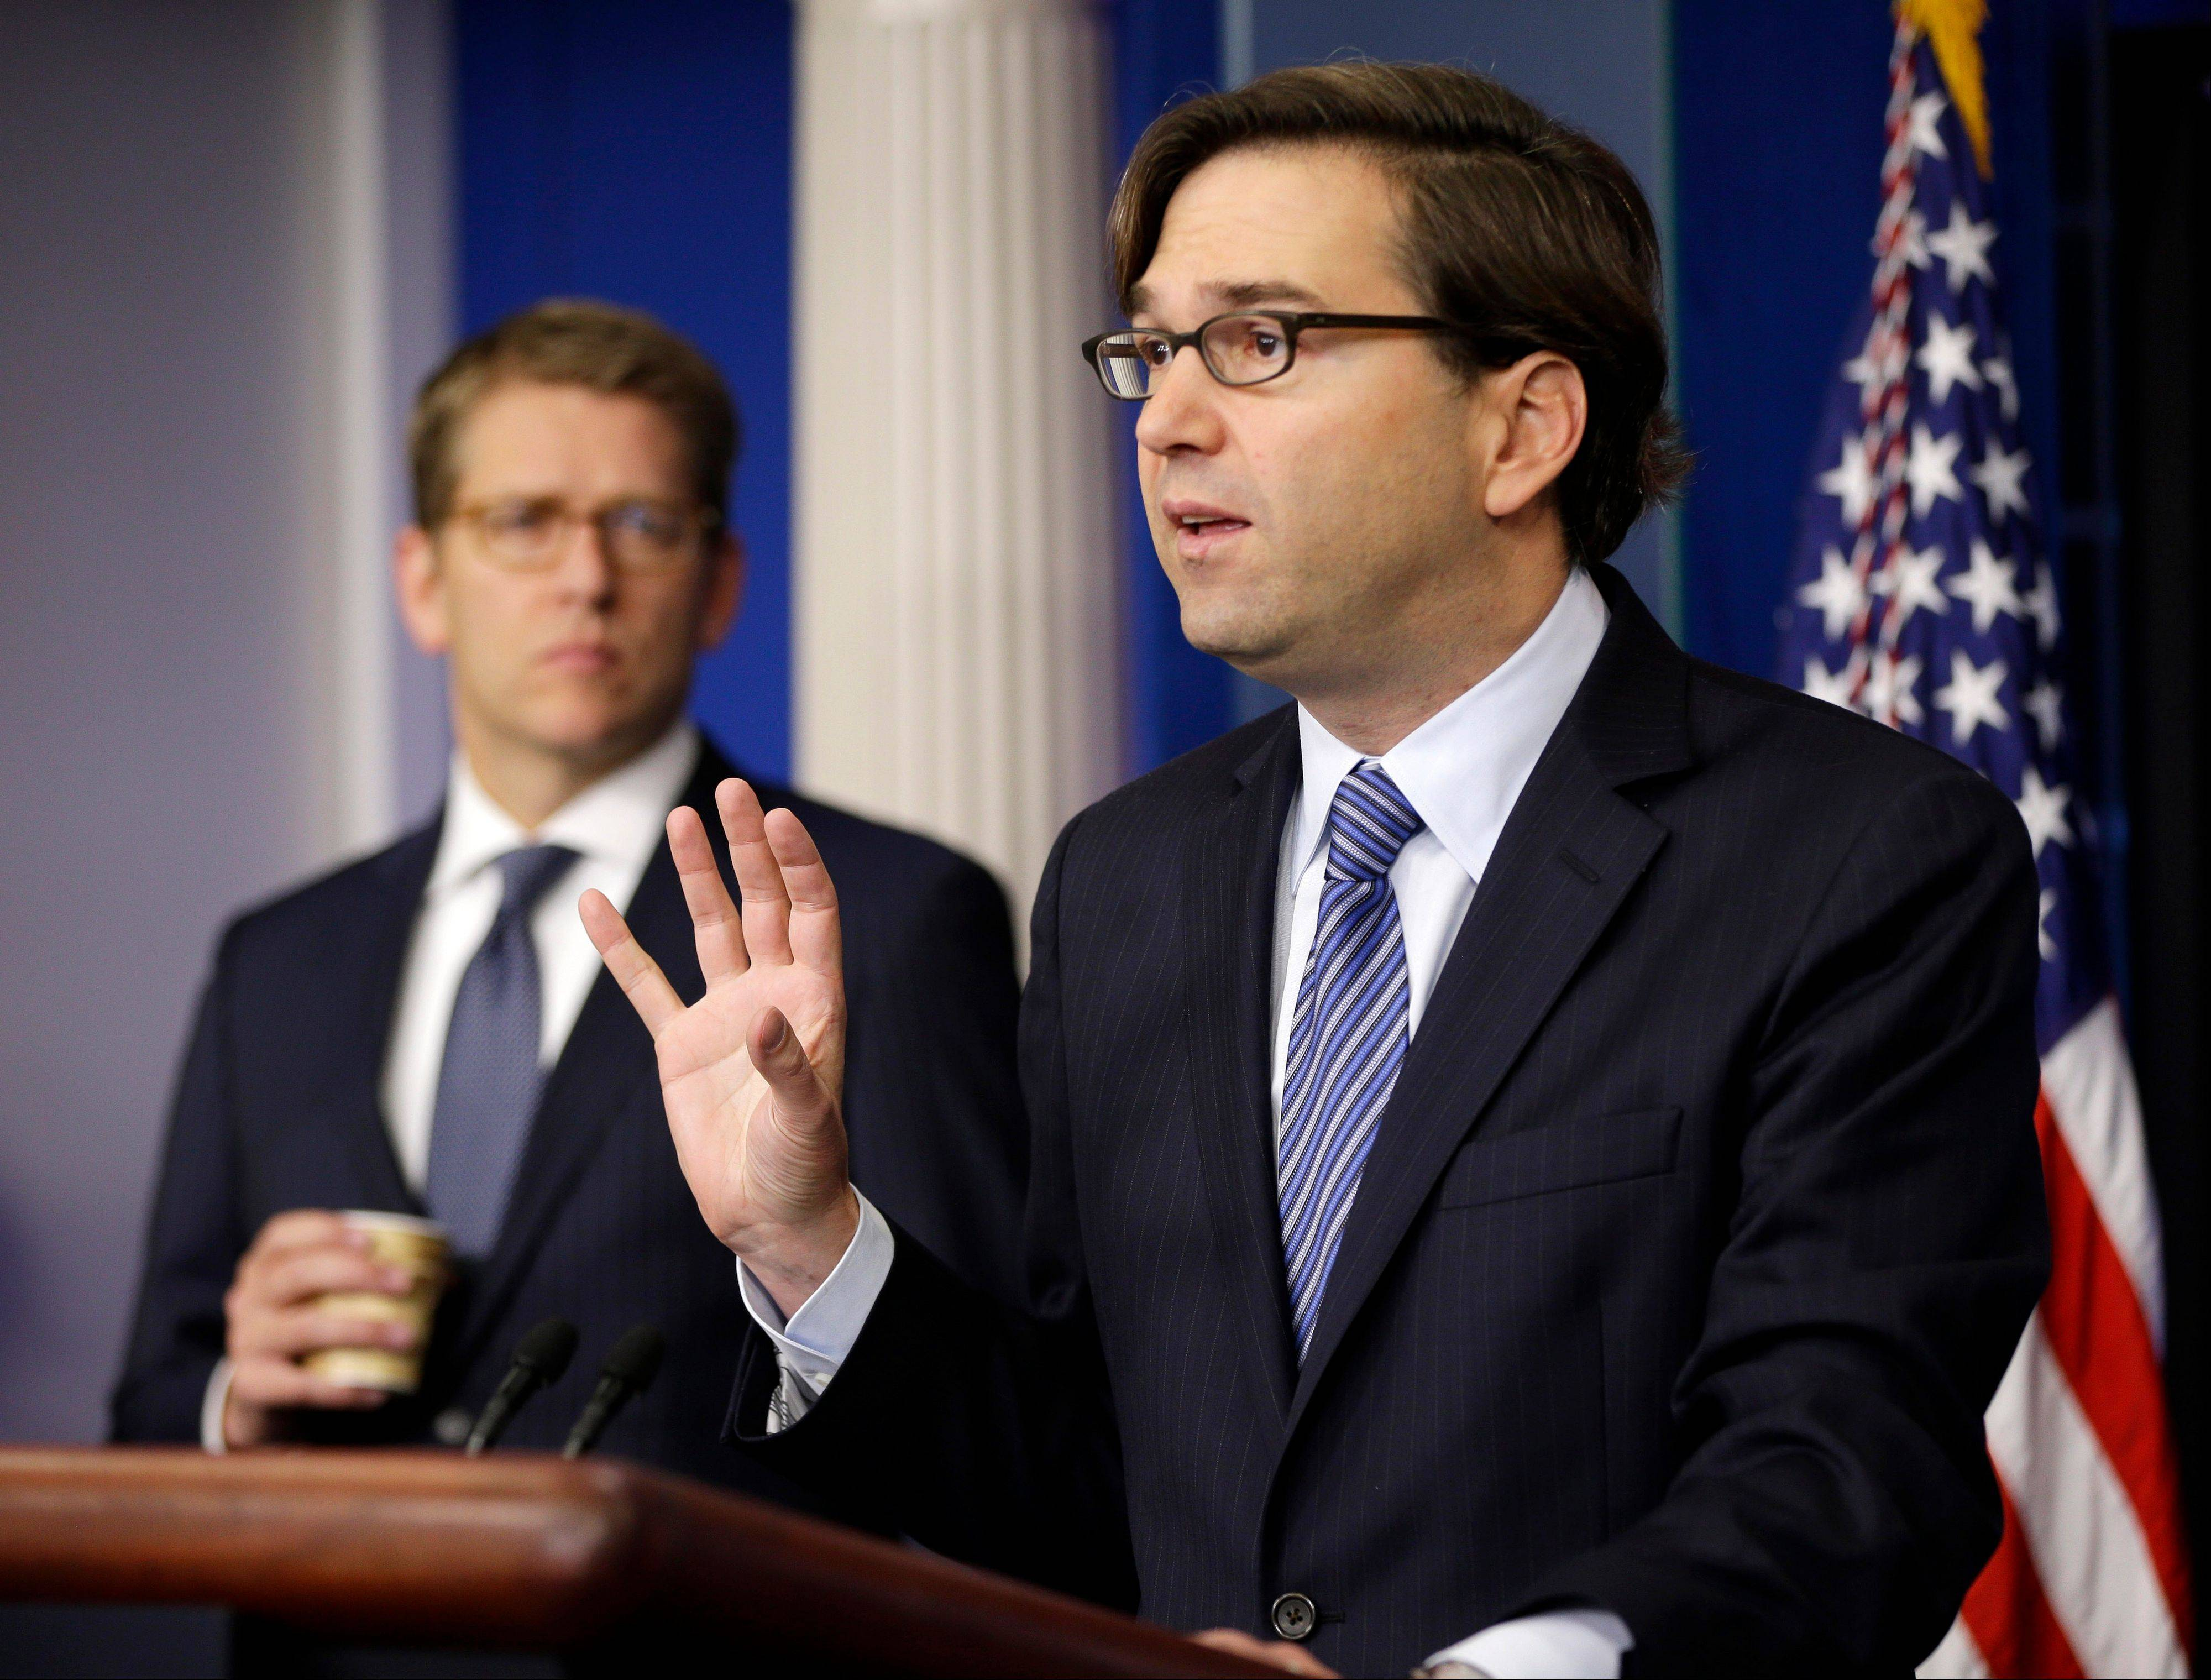 White House press Secretary Jay Carney listens at left as Jason Furman, assistant to the President for Economic Policy and Principal Deputy Director of the National Economic Council, speaks during the daily news briefing at the White House Wednesday.